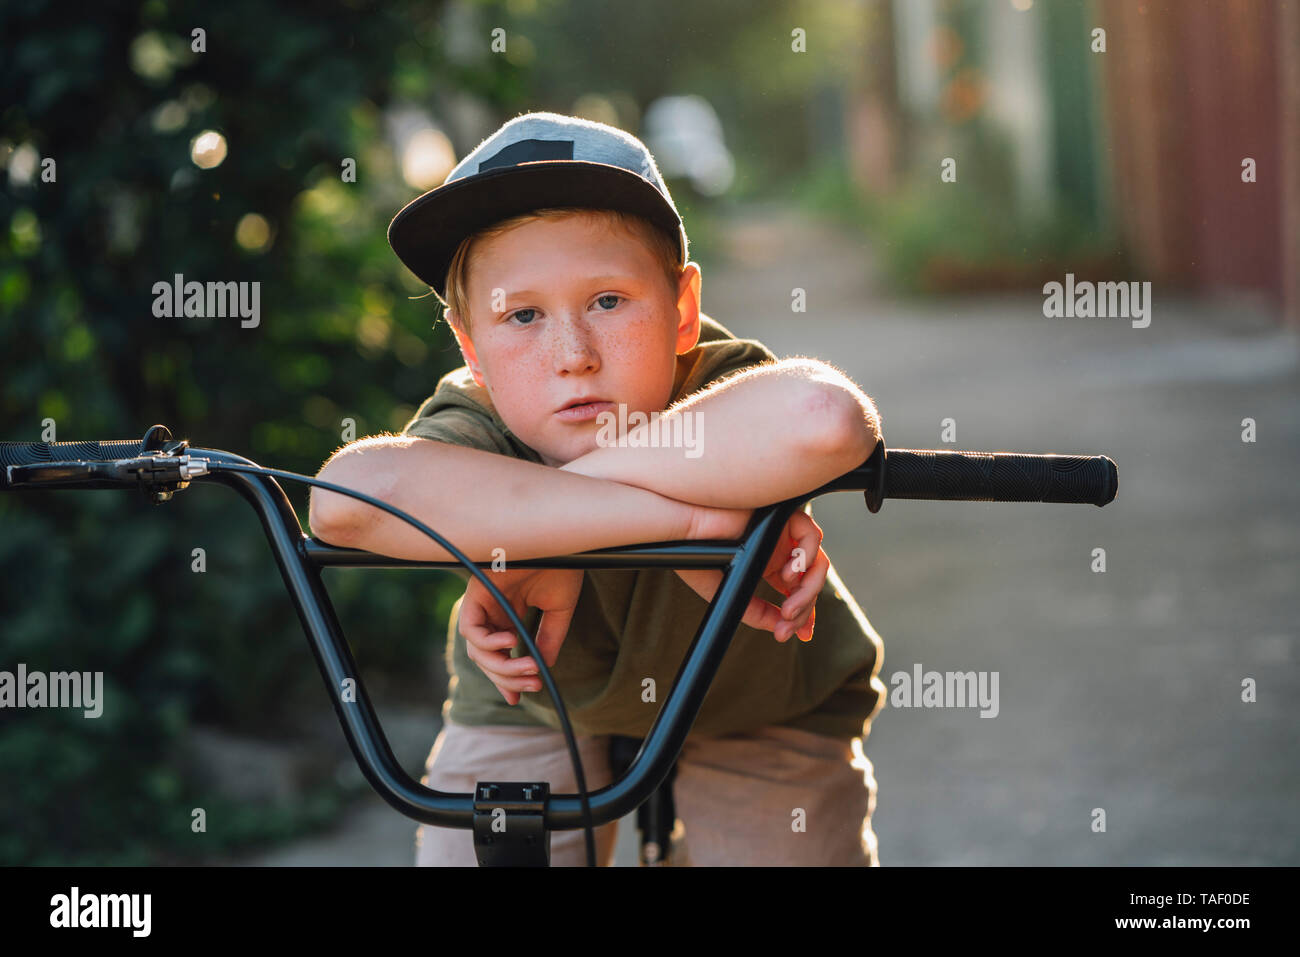 Portrait of boy with bmx bike on road - Stock Image